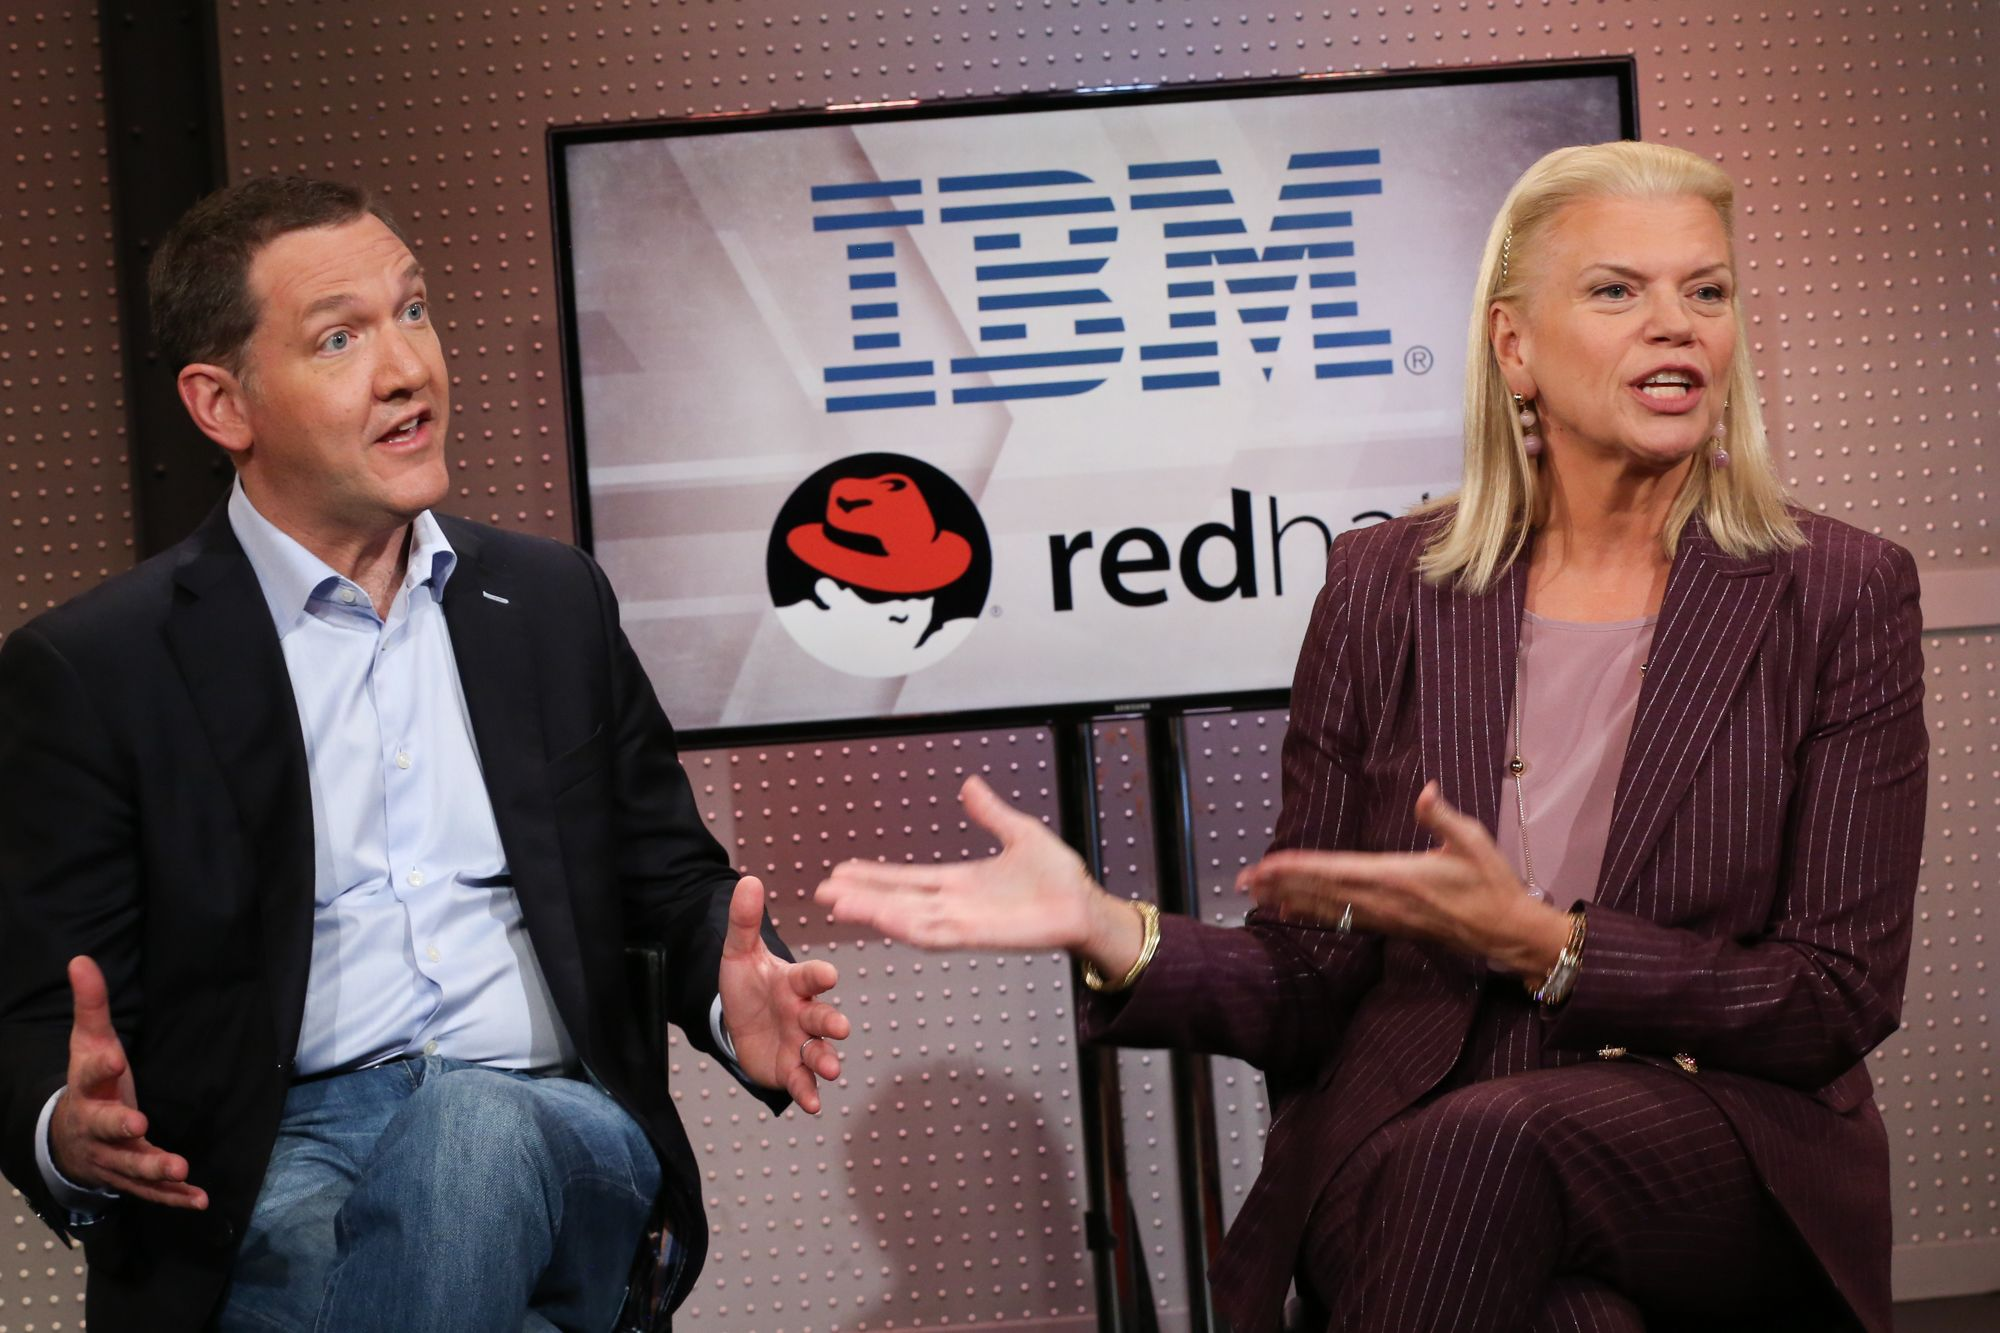 Red Hat software benefits the whole company